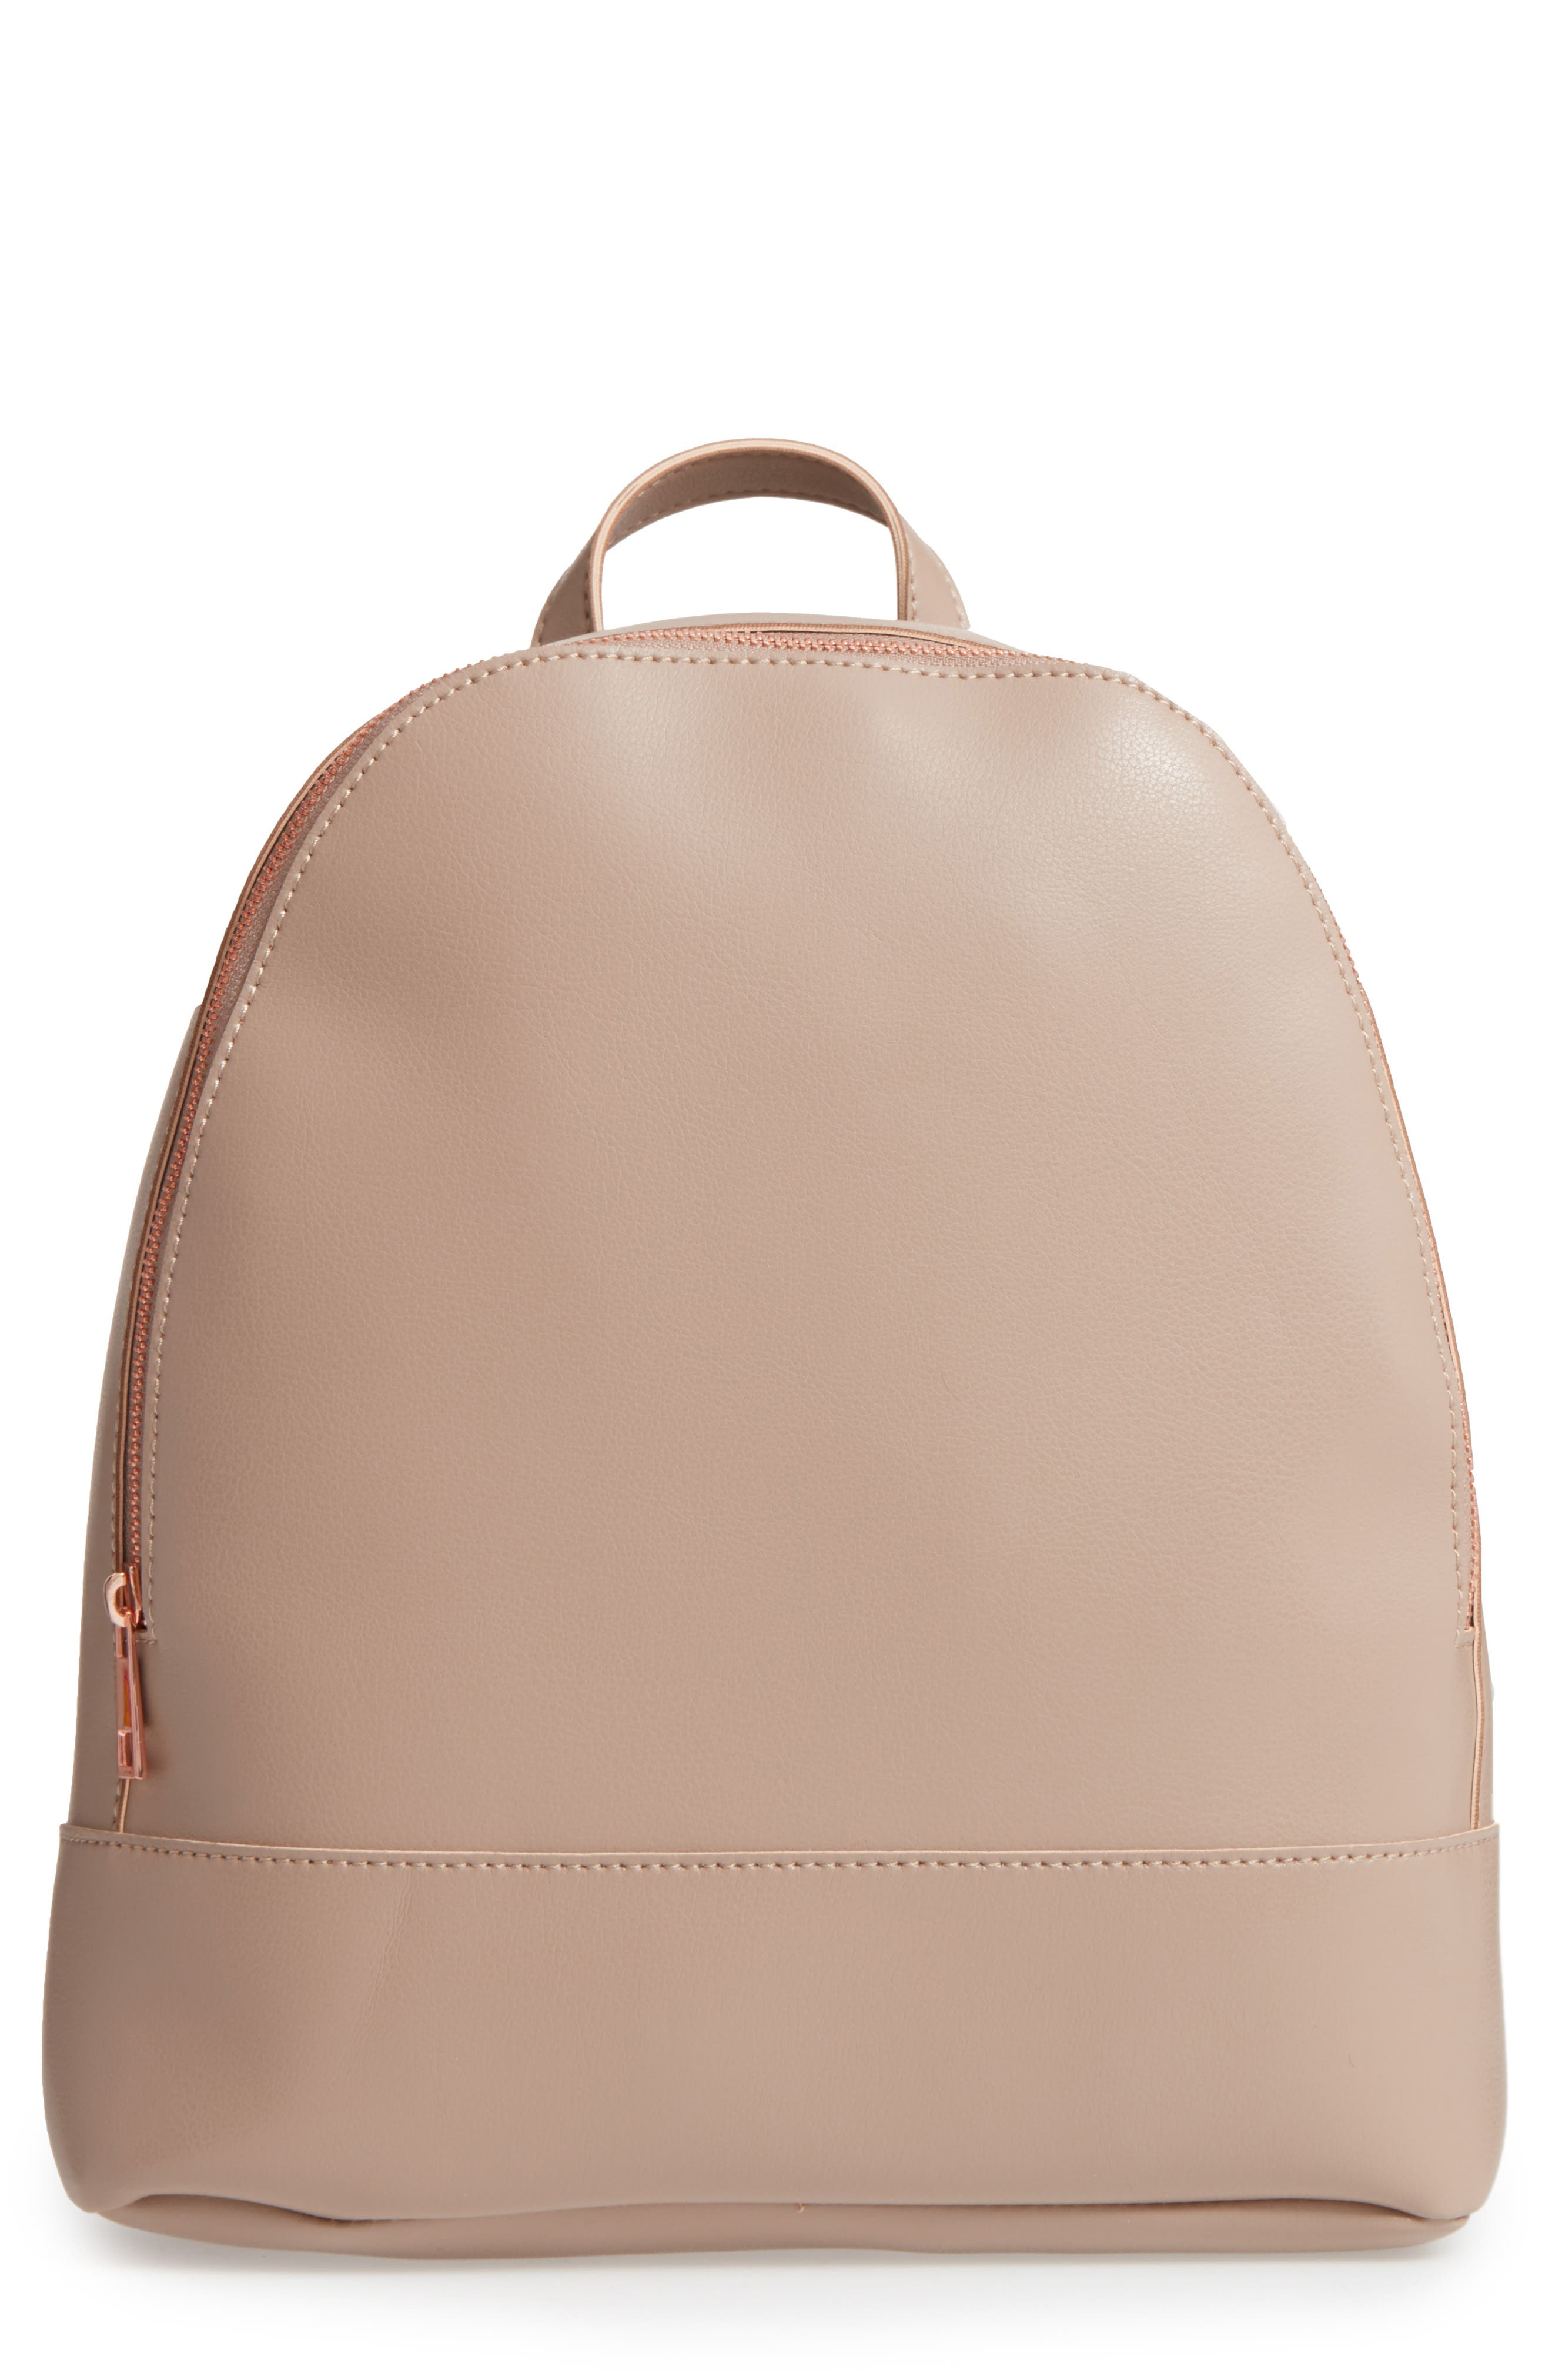 Chester Faux Leather Backpack,                             Main thumbnail 2, color,